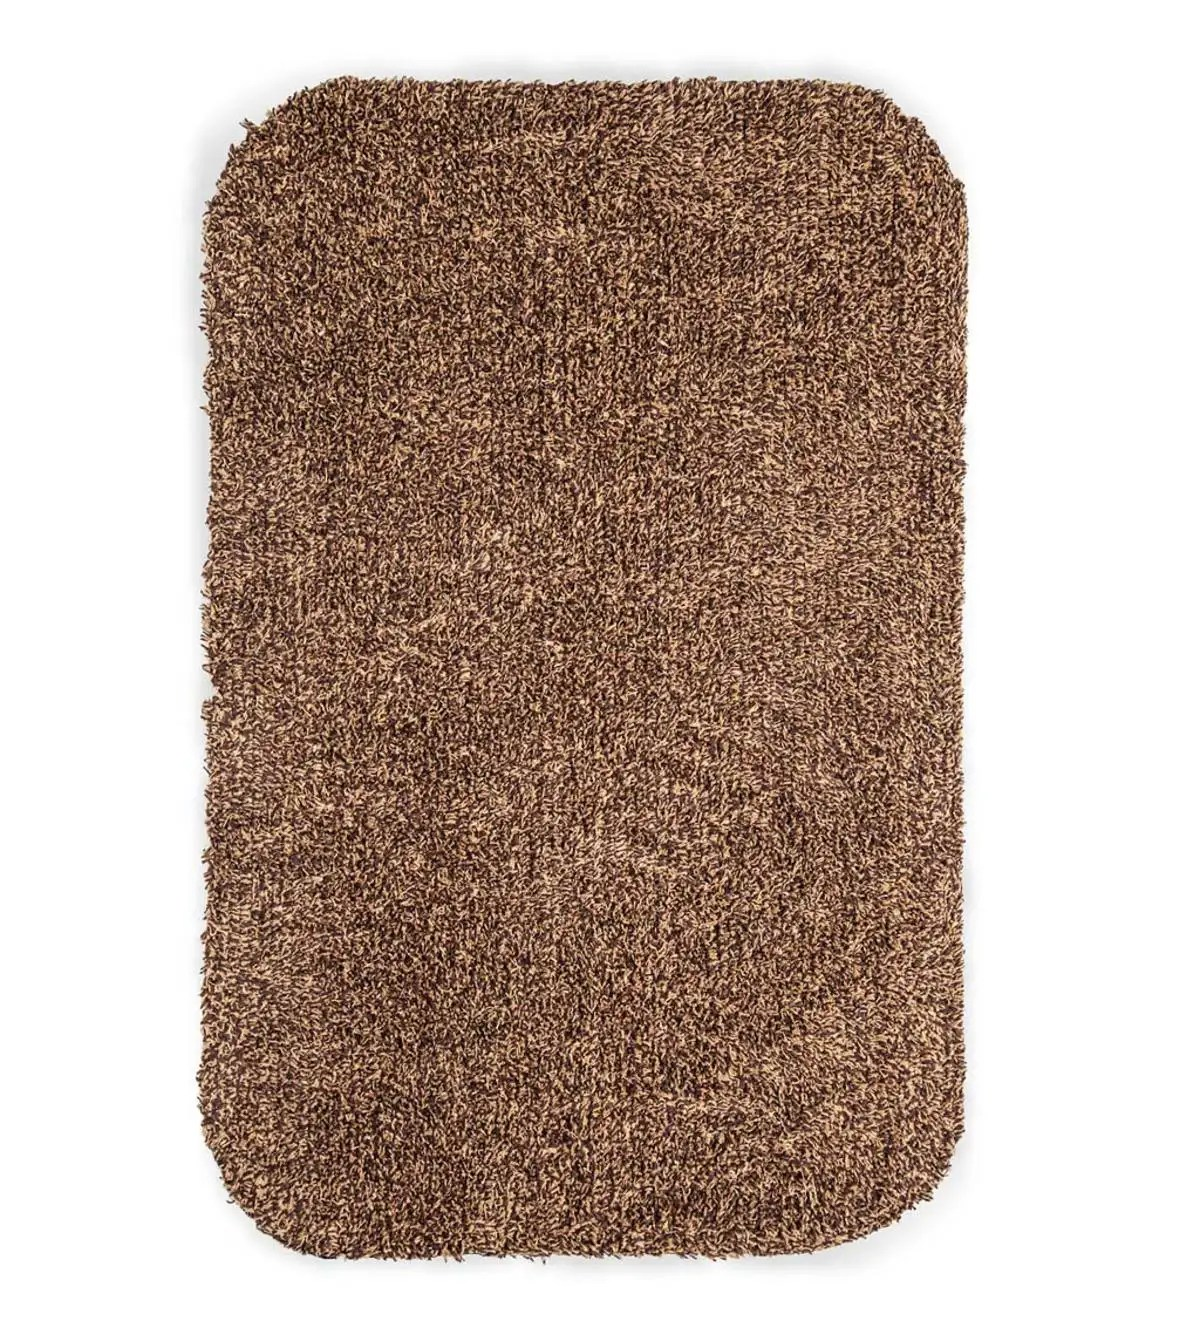 Garage Carpet Australia Medium Microfiber Mud Rug With Non Skid Backing 19